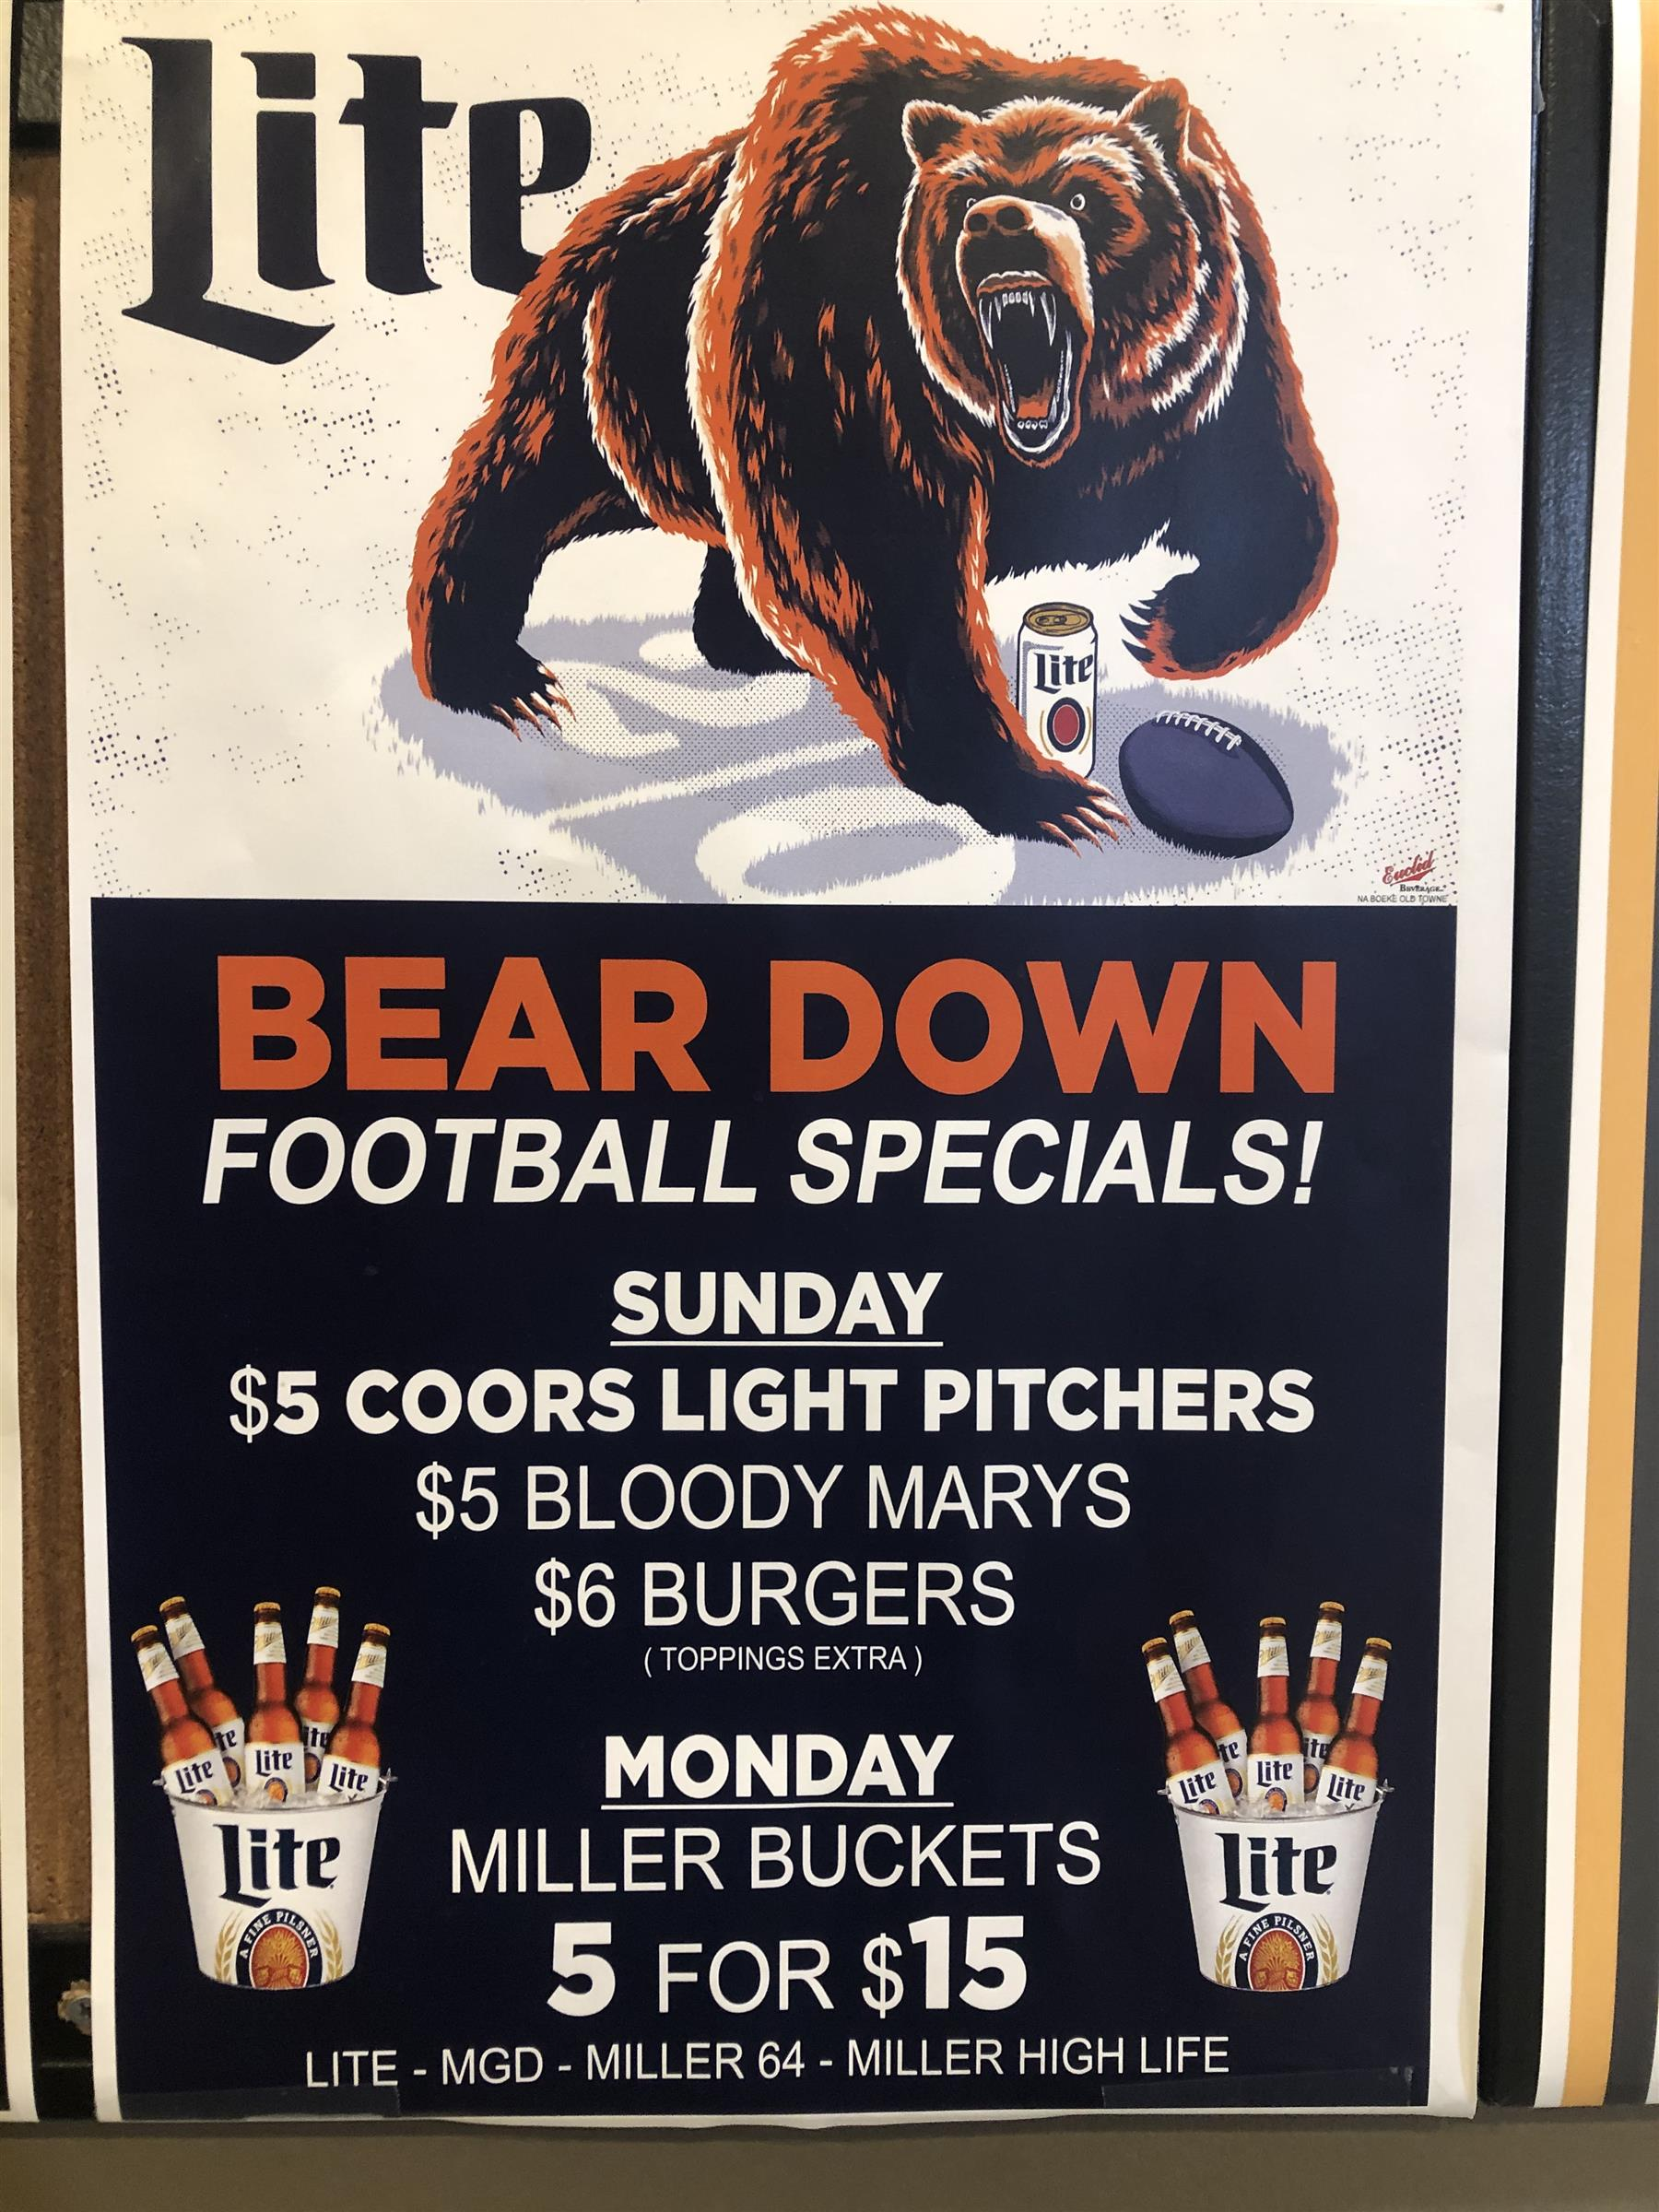 Bear Down football specials $5 coors light pitchers $5 bloody marys $6 burgers